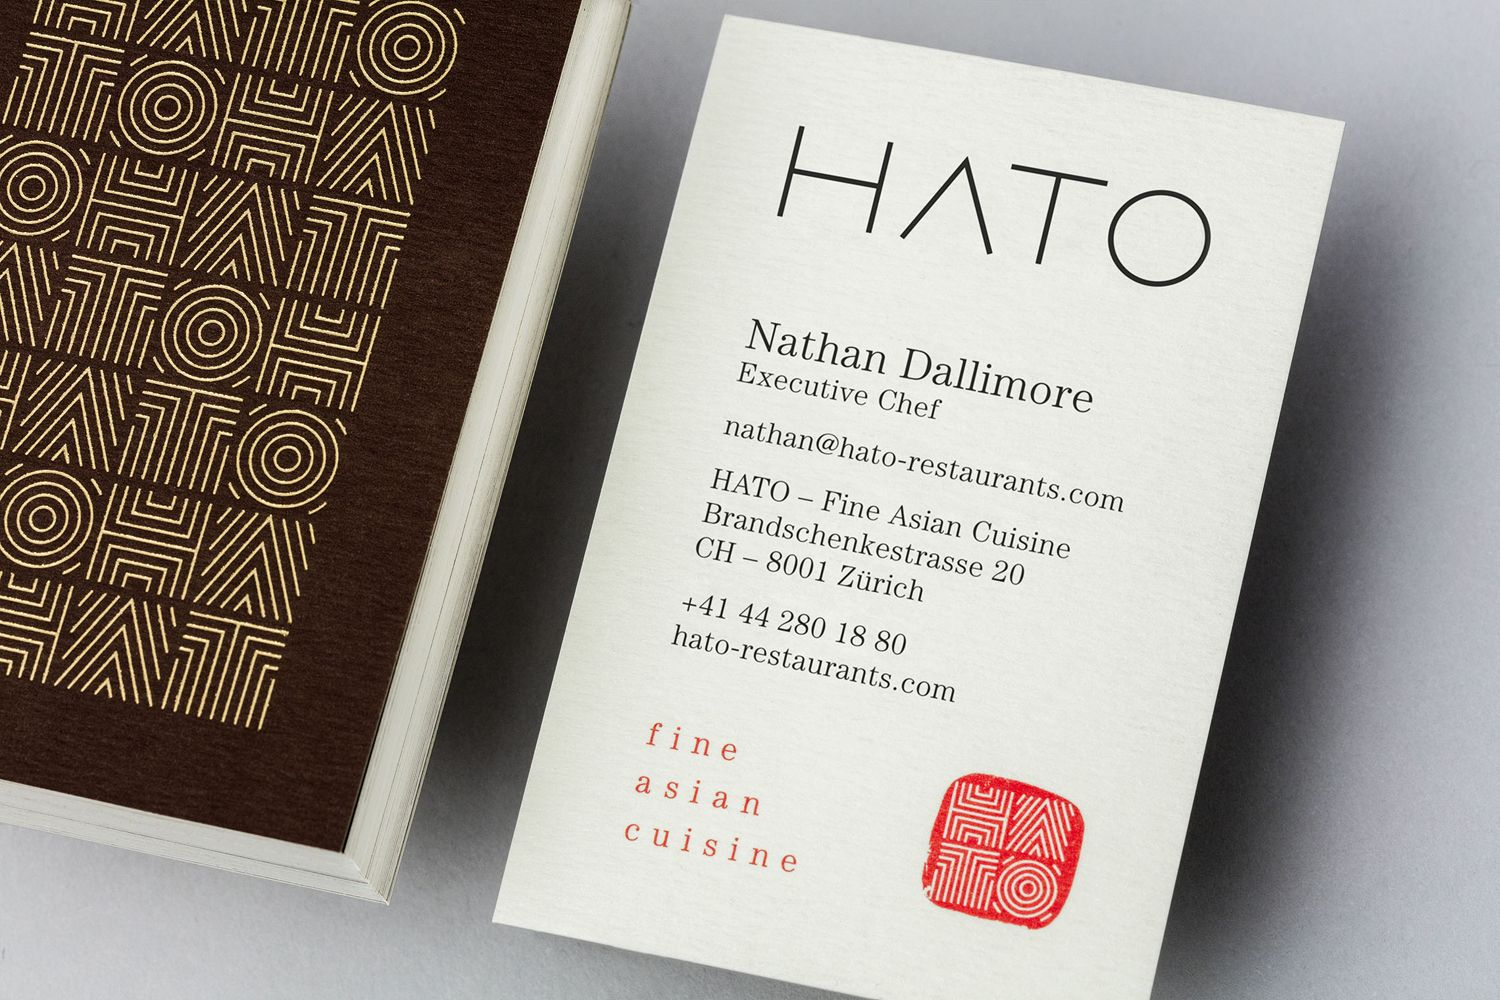 New brand identity for hato by allink bpo bpo pinterest brand identity and business cards for fine dining asian restaurant hato designed by allink switzerland colourmoves